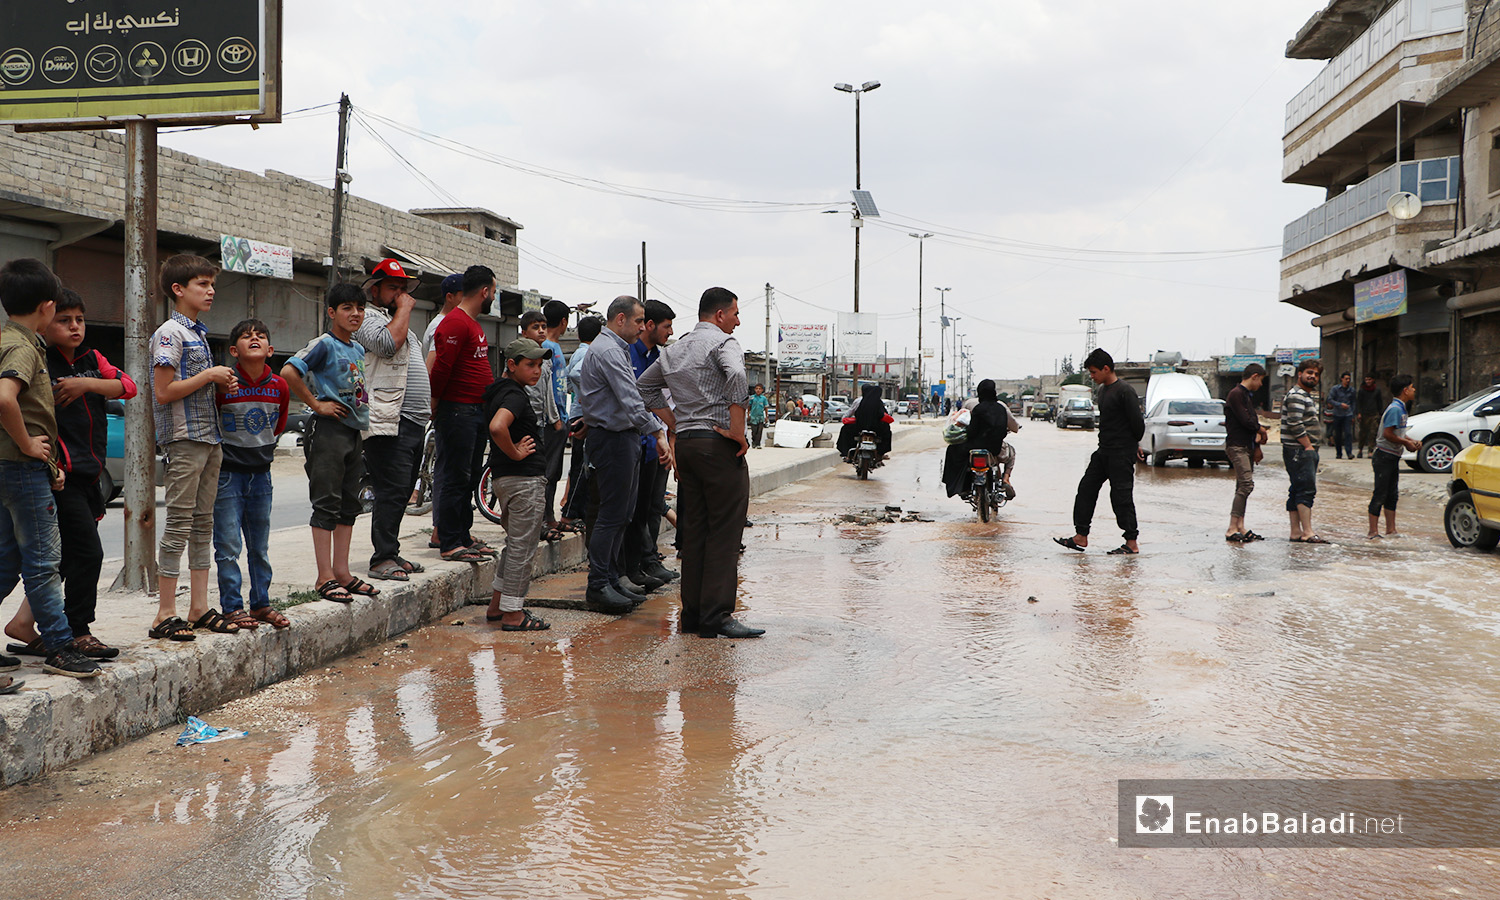 The overflowing of water due to the breakdowns of the water pipes system in al-Bab city of northern Aleppo countryside – 20 June 2020 (Enab Baladi / Asim Melhem)